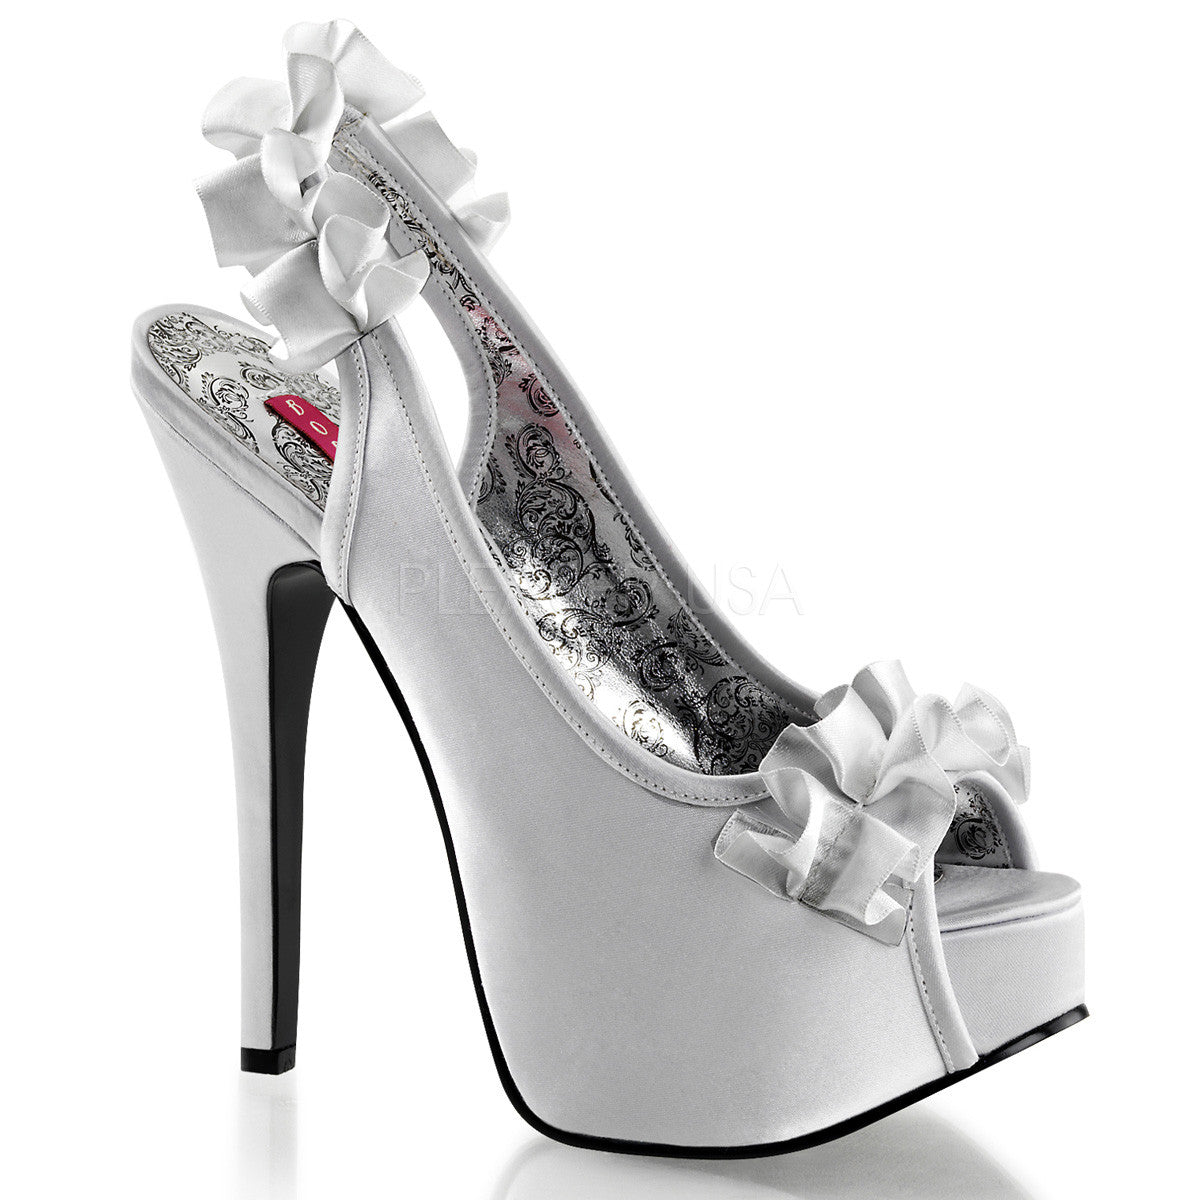 Bordello,Bordello TEEZE-56 Silver Satin Sandals - Shoecup.com